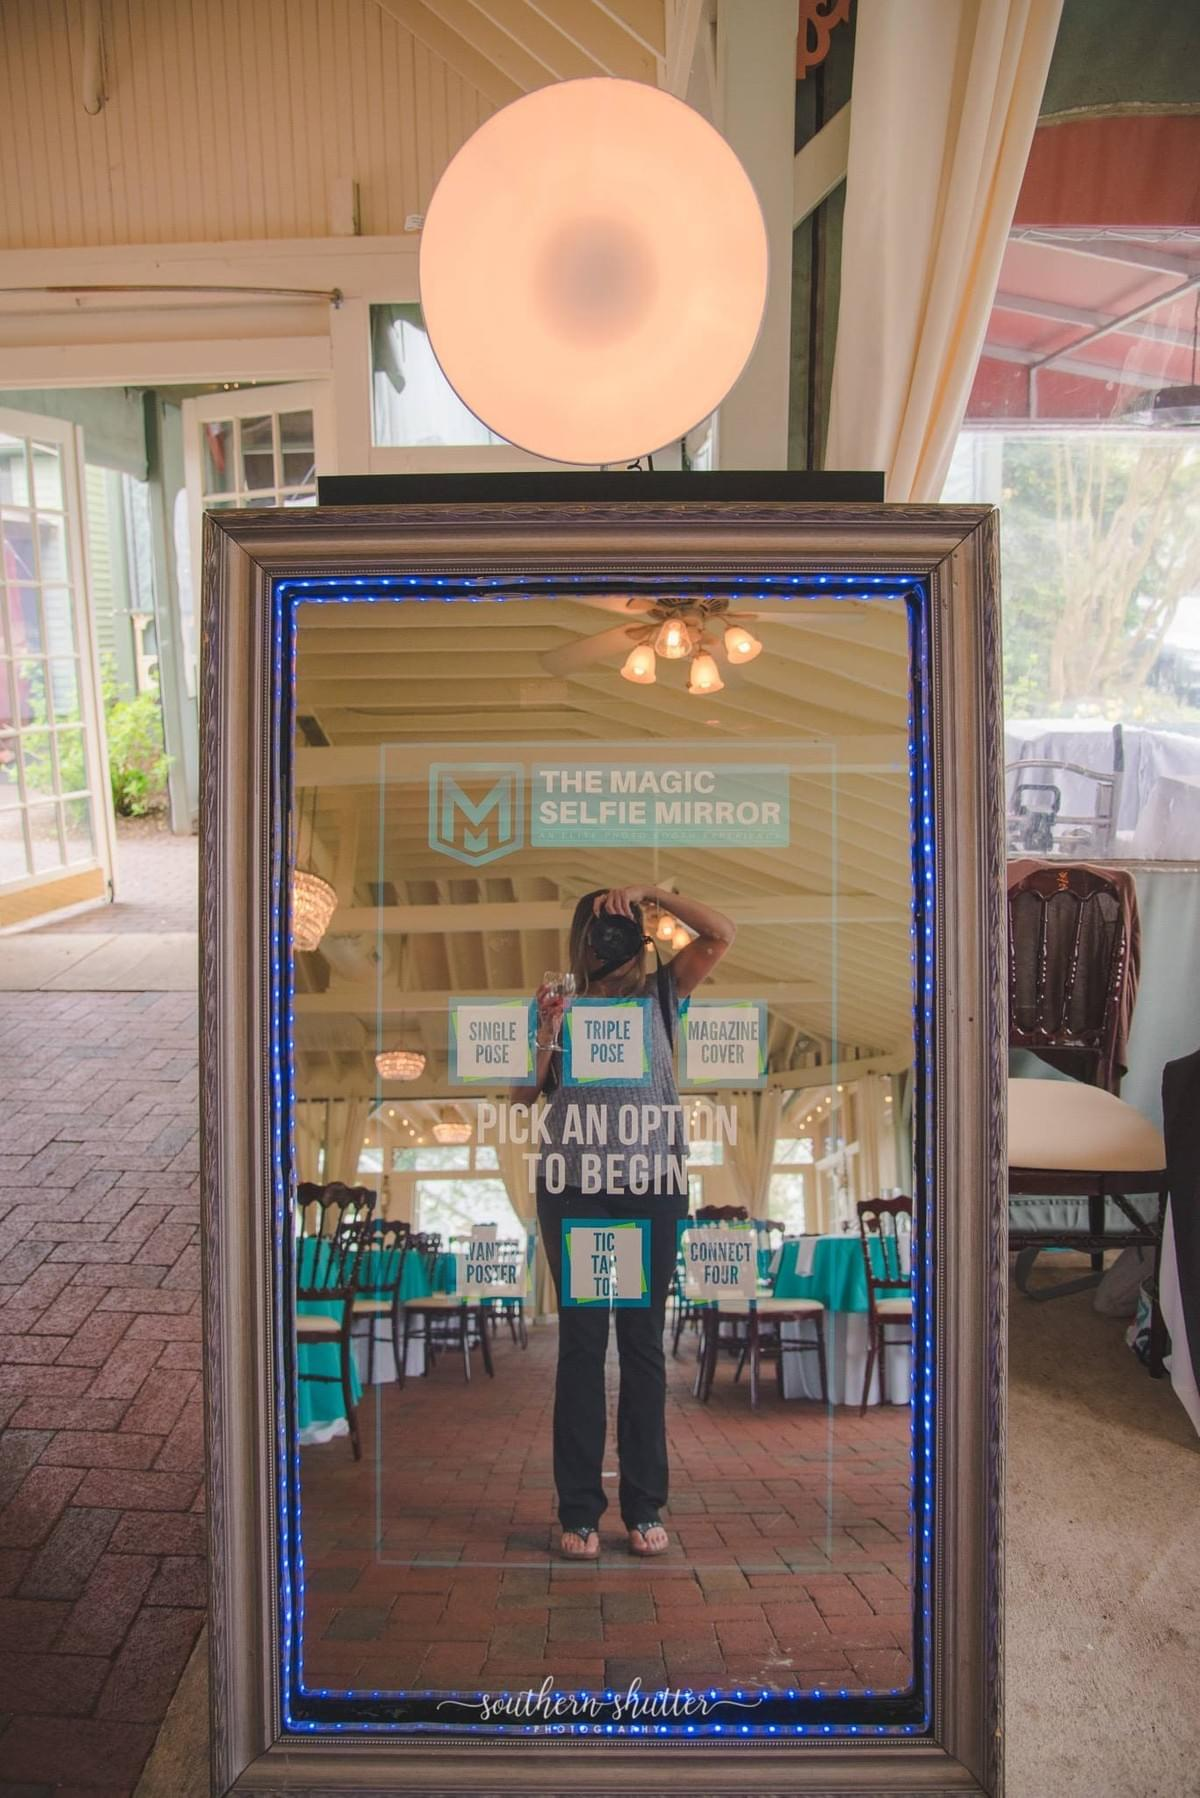 Southern Shutter Photography and The Magic Selfie Mirror